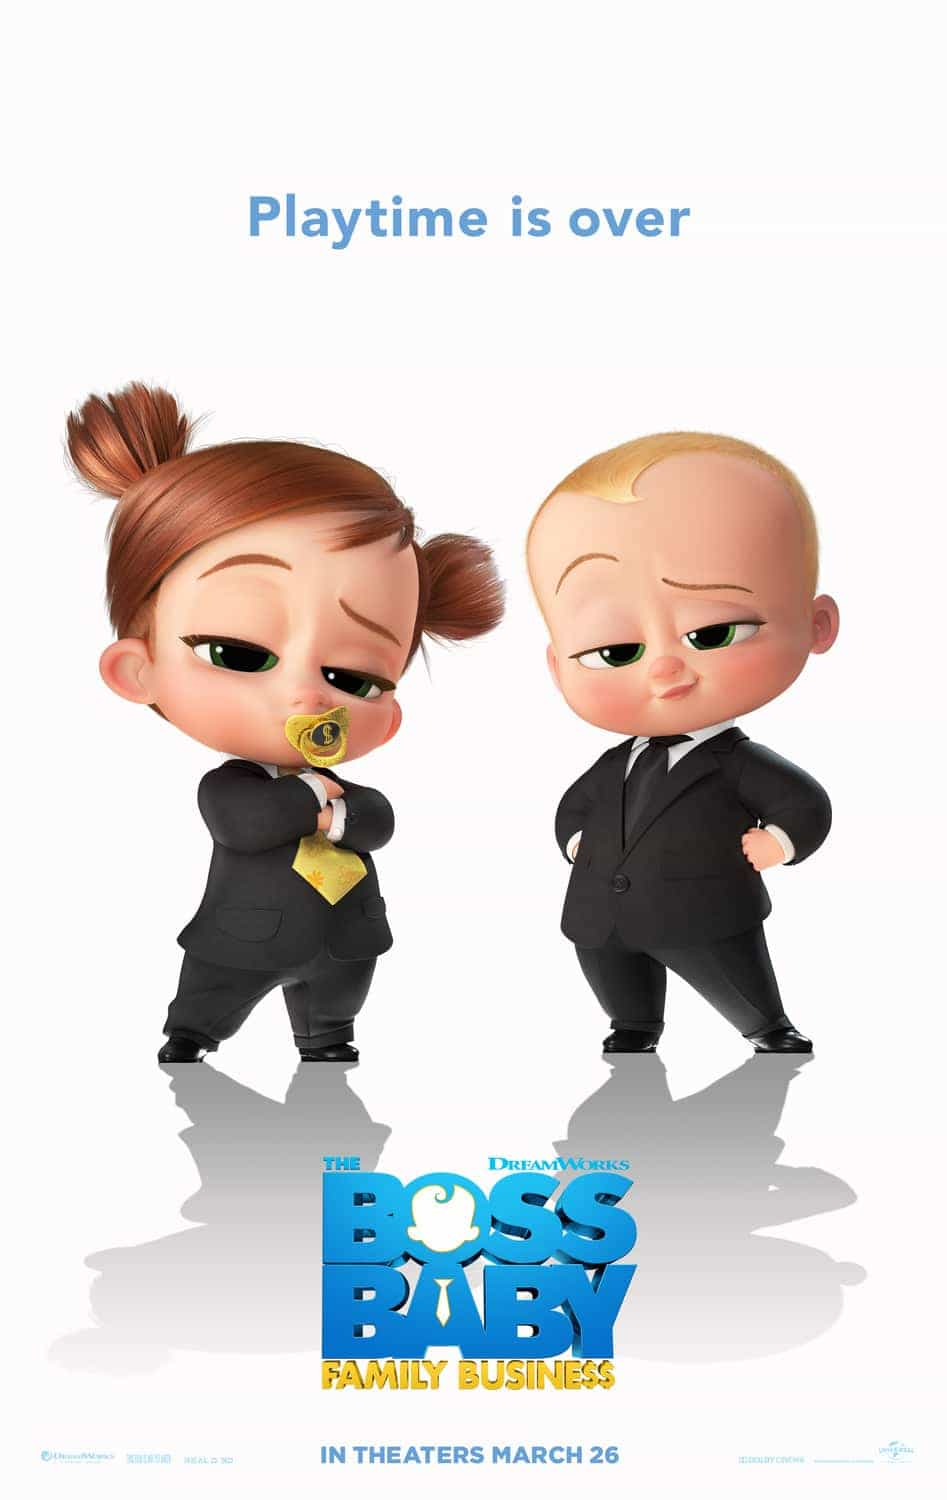 The Boss Baby 2: Family Business is given a PG age rating in the UK for mild bad language, violence, threat